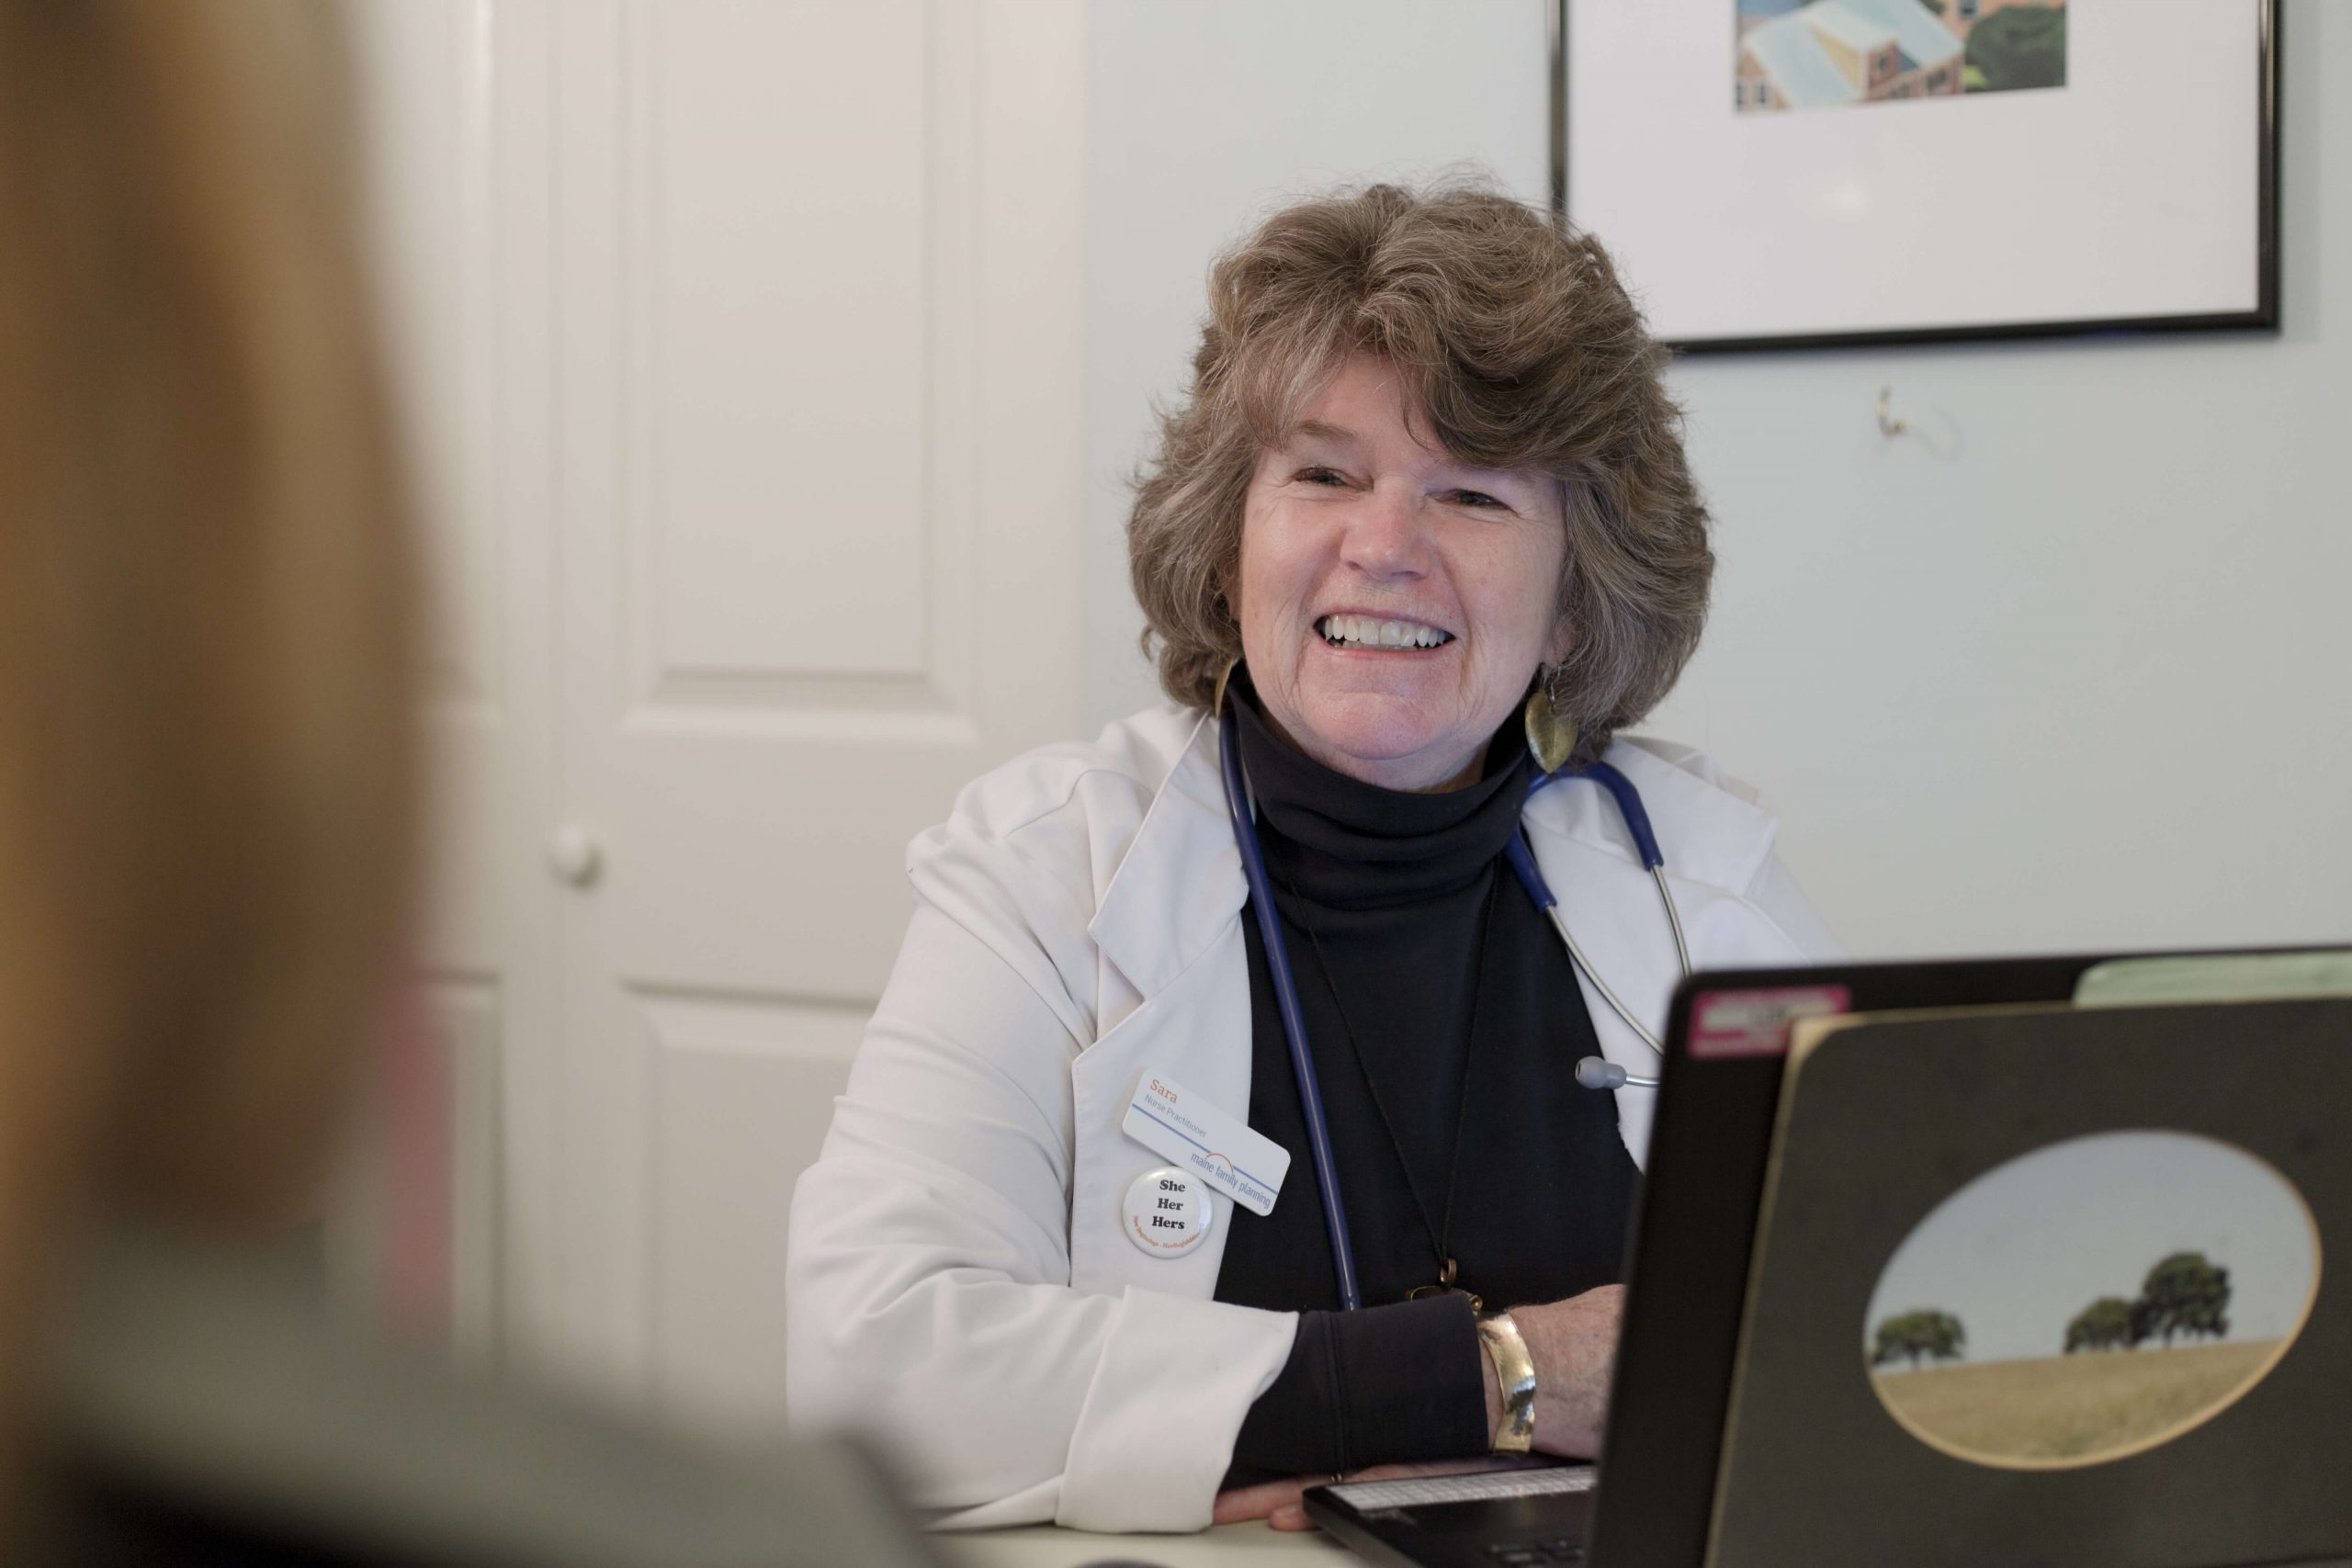 An MFP nurse practitioner sitting in front of an open laptop used for telehealth appointments.